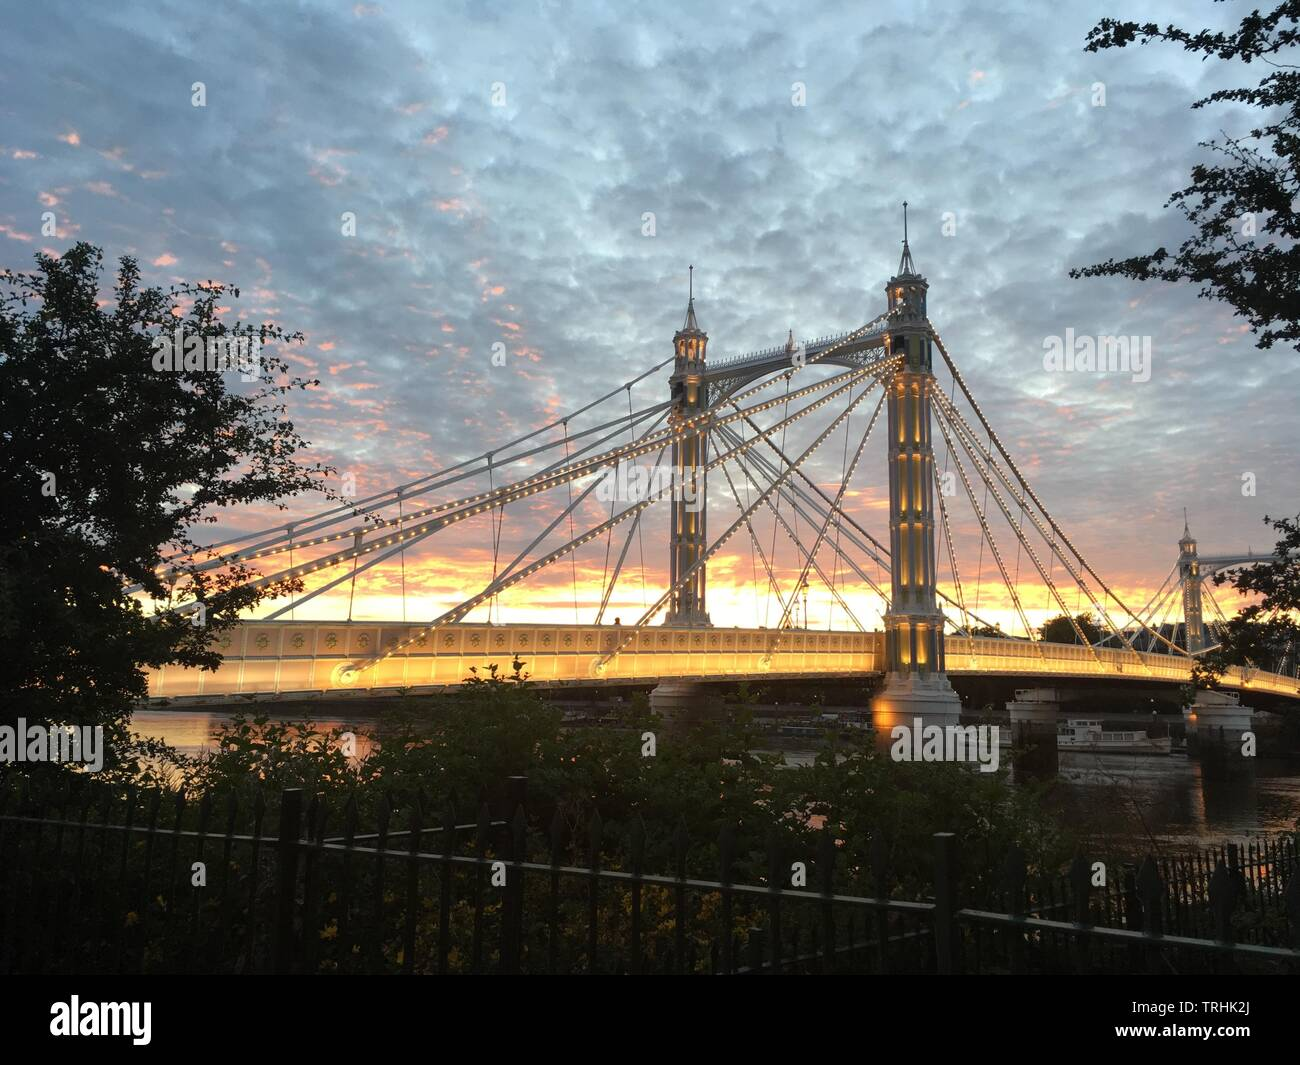 Sunset Albert Bridge London 2 - Stock Image